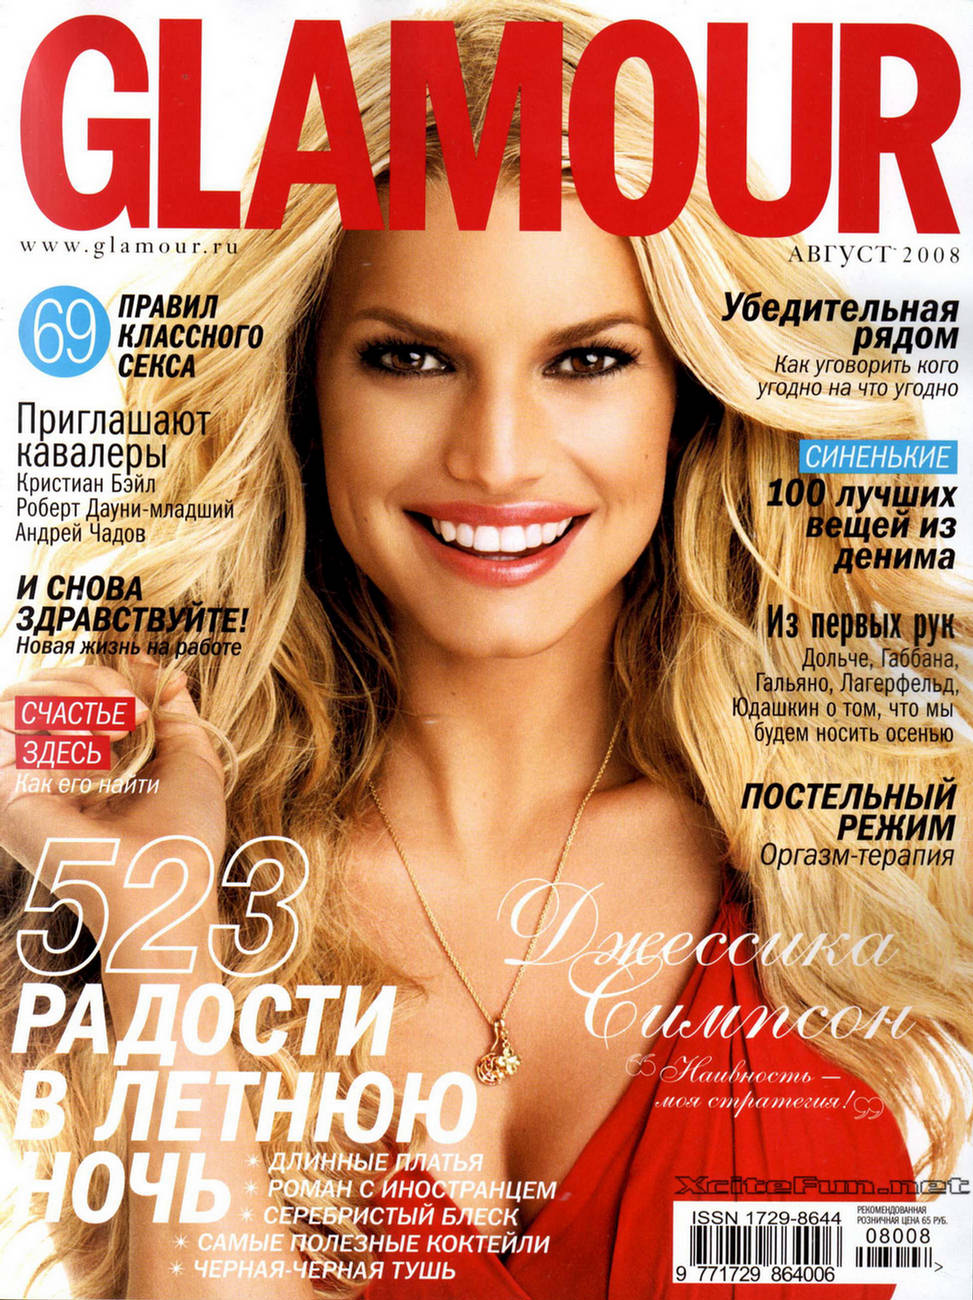 Free Cute Wallpapers With Quotes Jessica Simpson Photo Shoot For Glamour Magazine Aug 2008